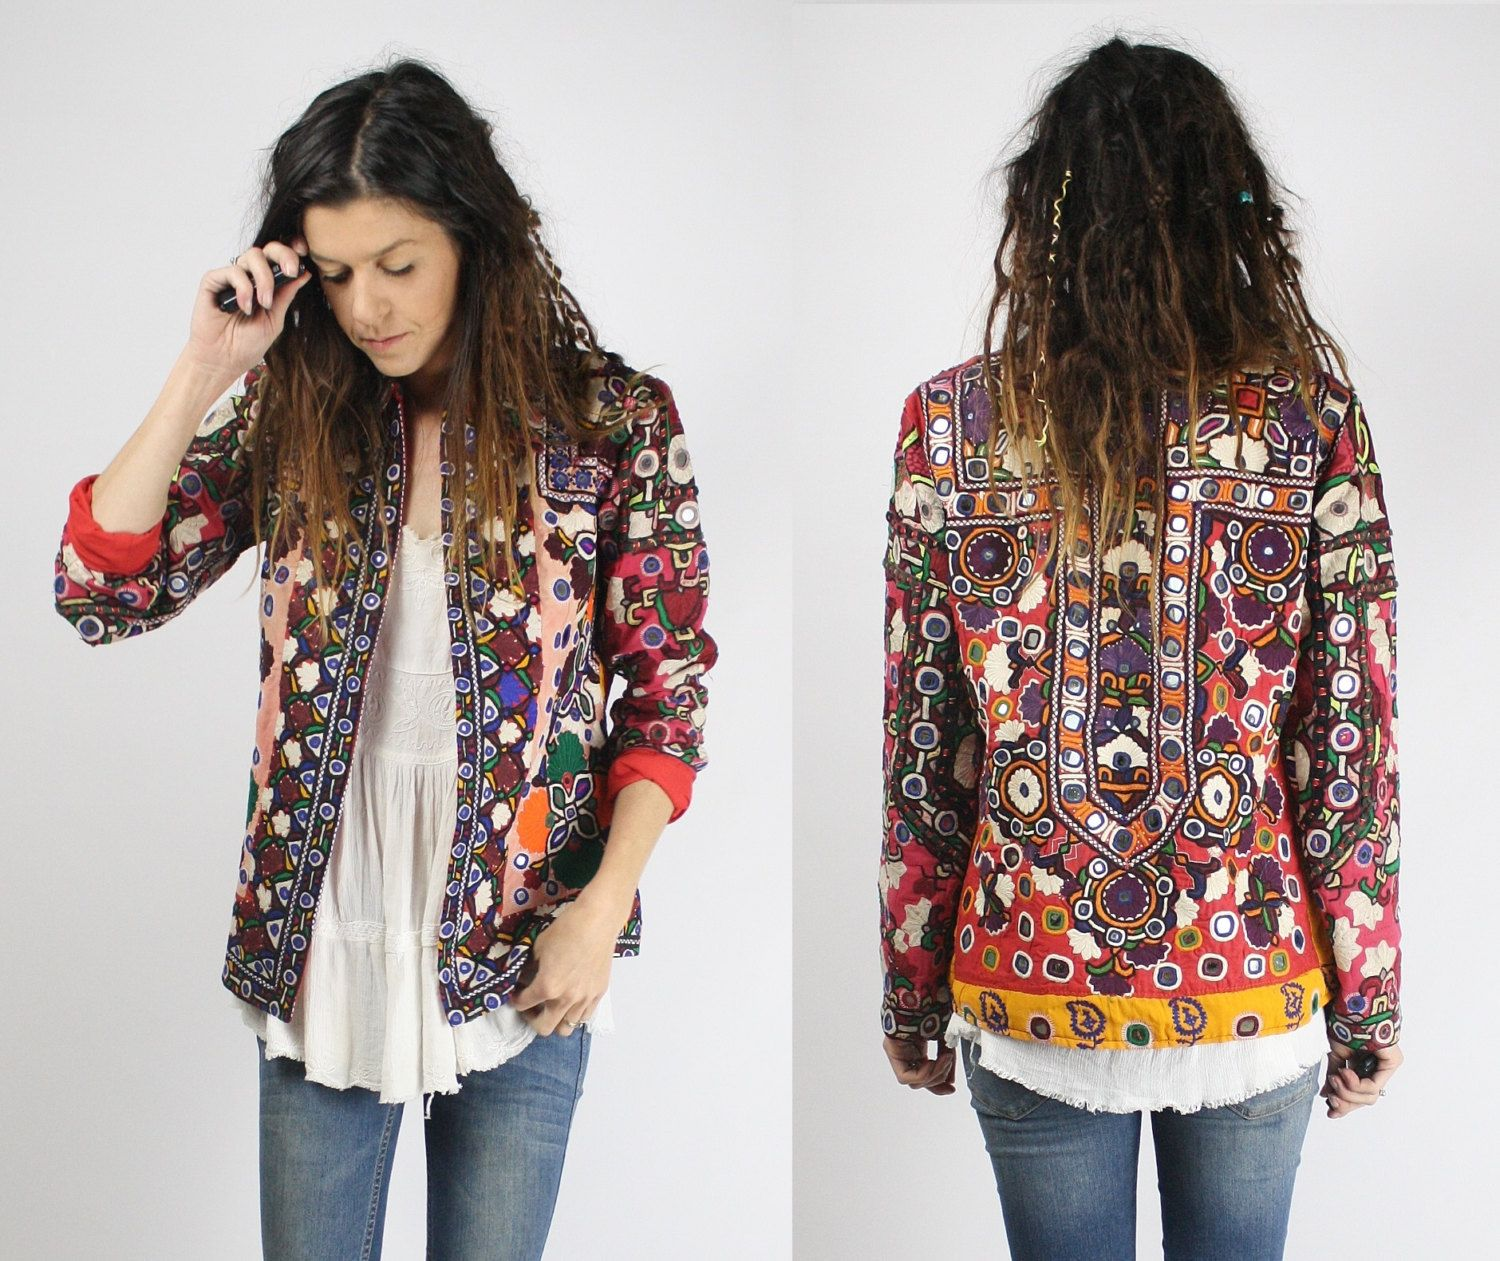 6bcae3f0 GYPSY JACKET Vintage boho jacket Bohemian Mirror embroidery Traditional  Banjara Native Tribal Ethnic Indian Festival OOAK S (265.00 AUD) by  renewvintage